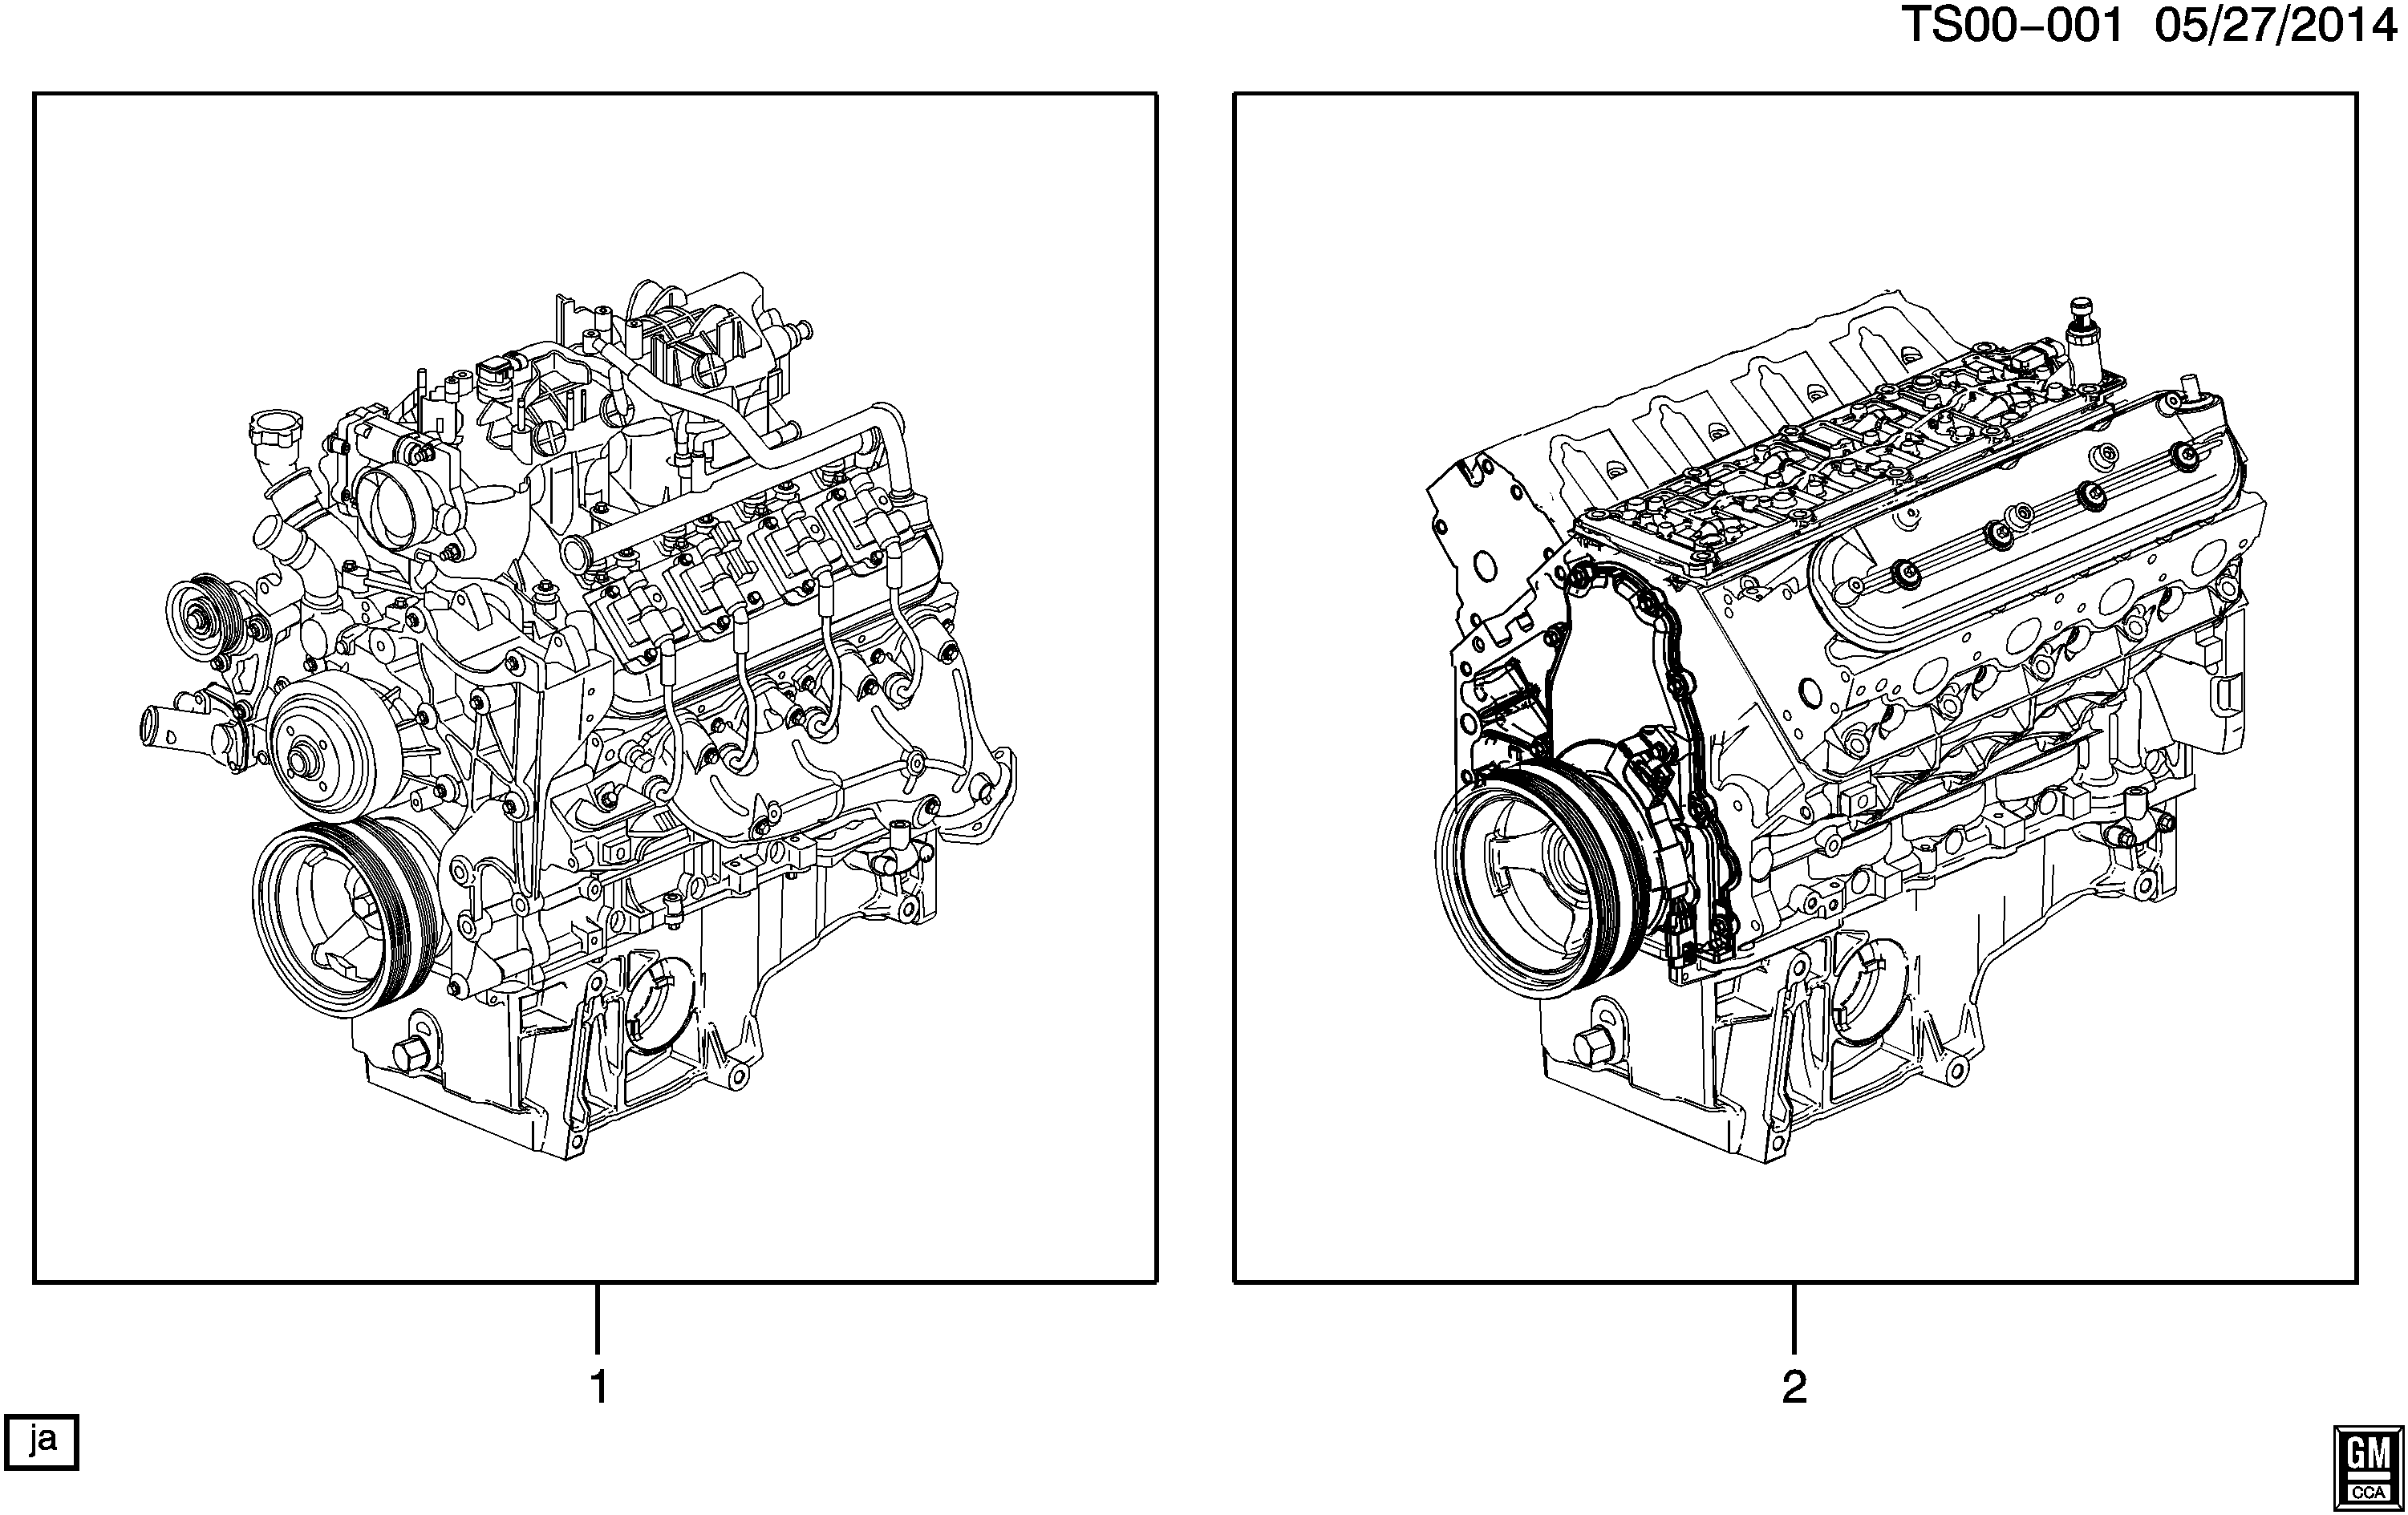 2005-2009 T1 ENGINE ASM & PARTIAL ENGINE (LH6/5.3M)